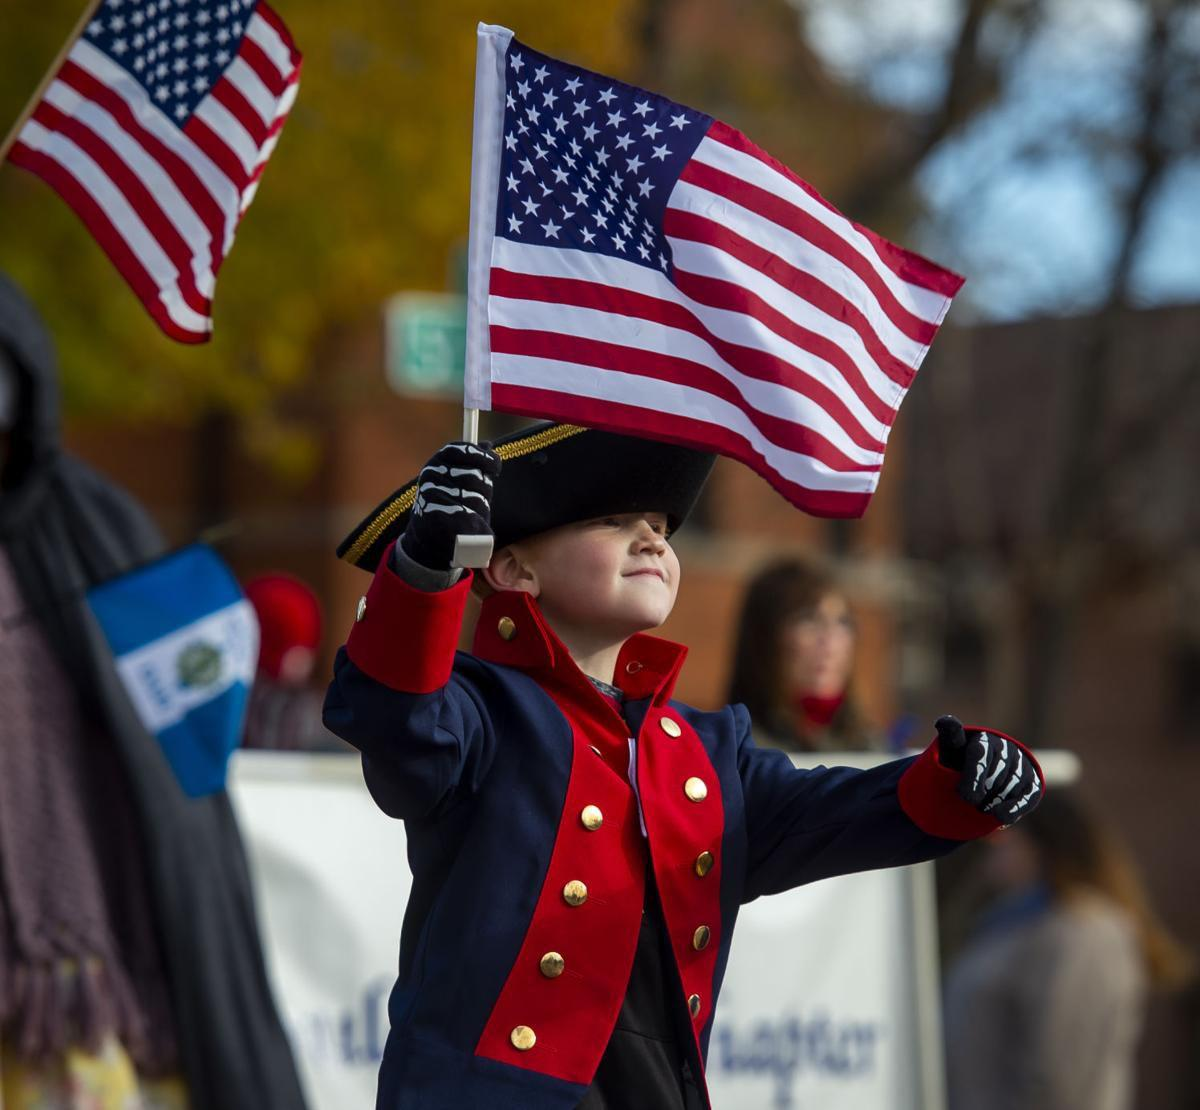 Colorado Springs celebrates 100 years of armistice, honors nation's veterans